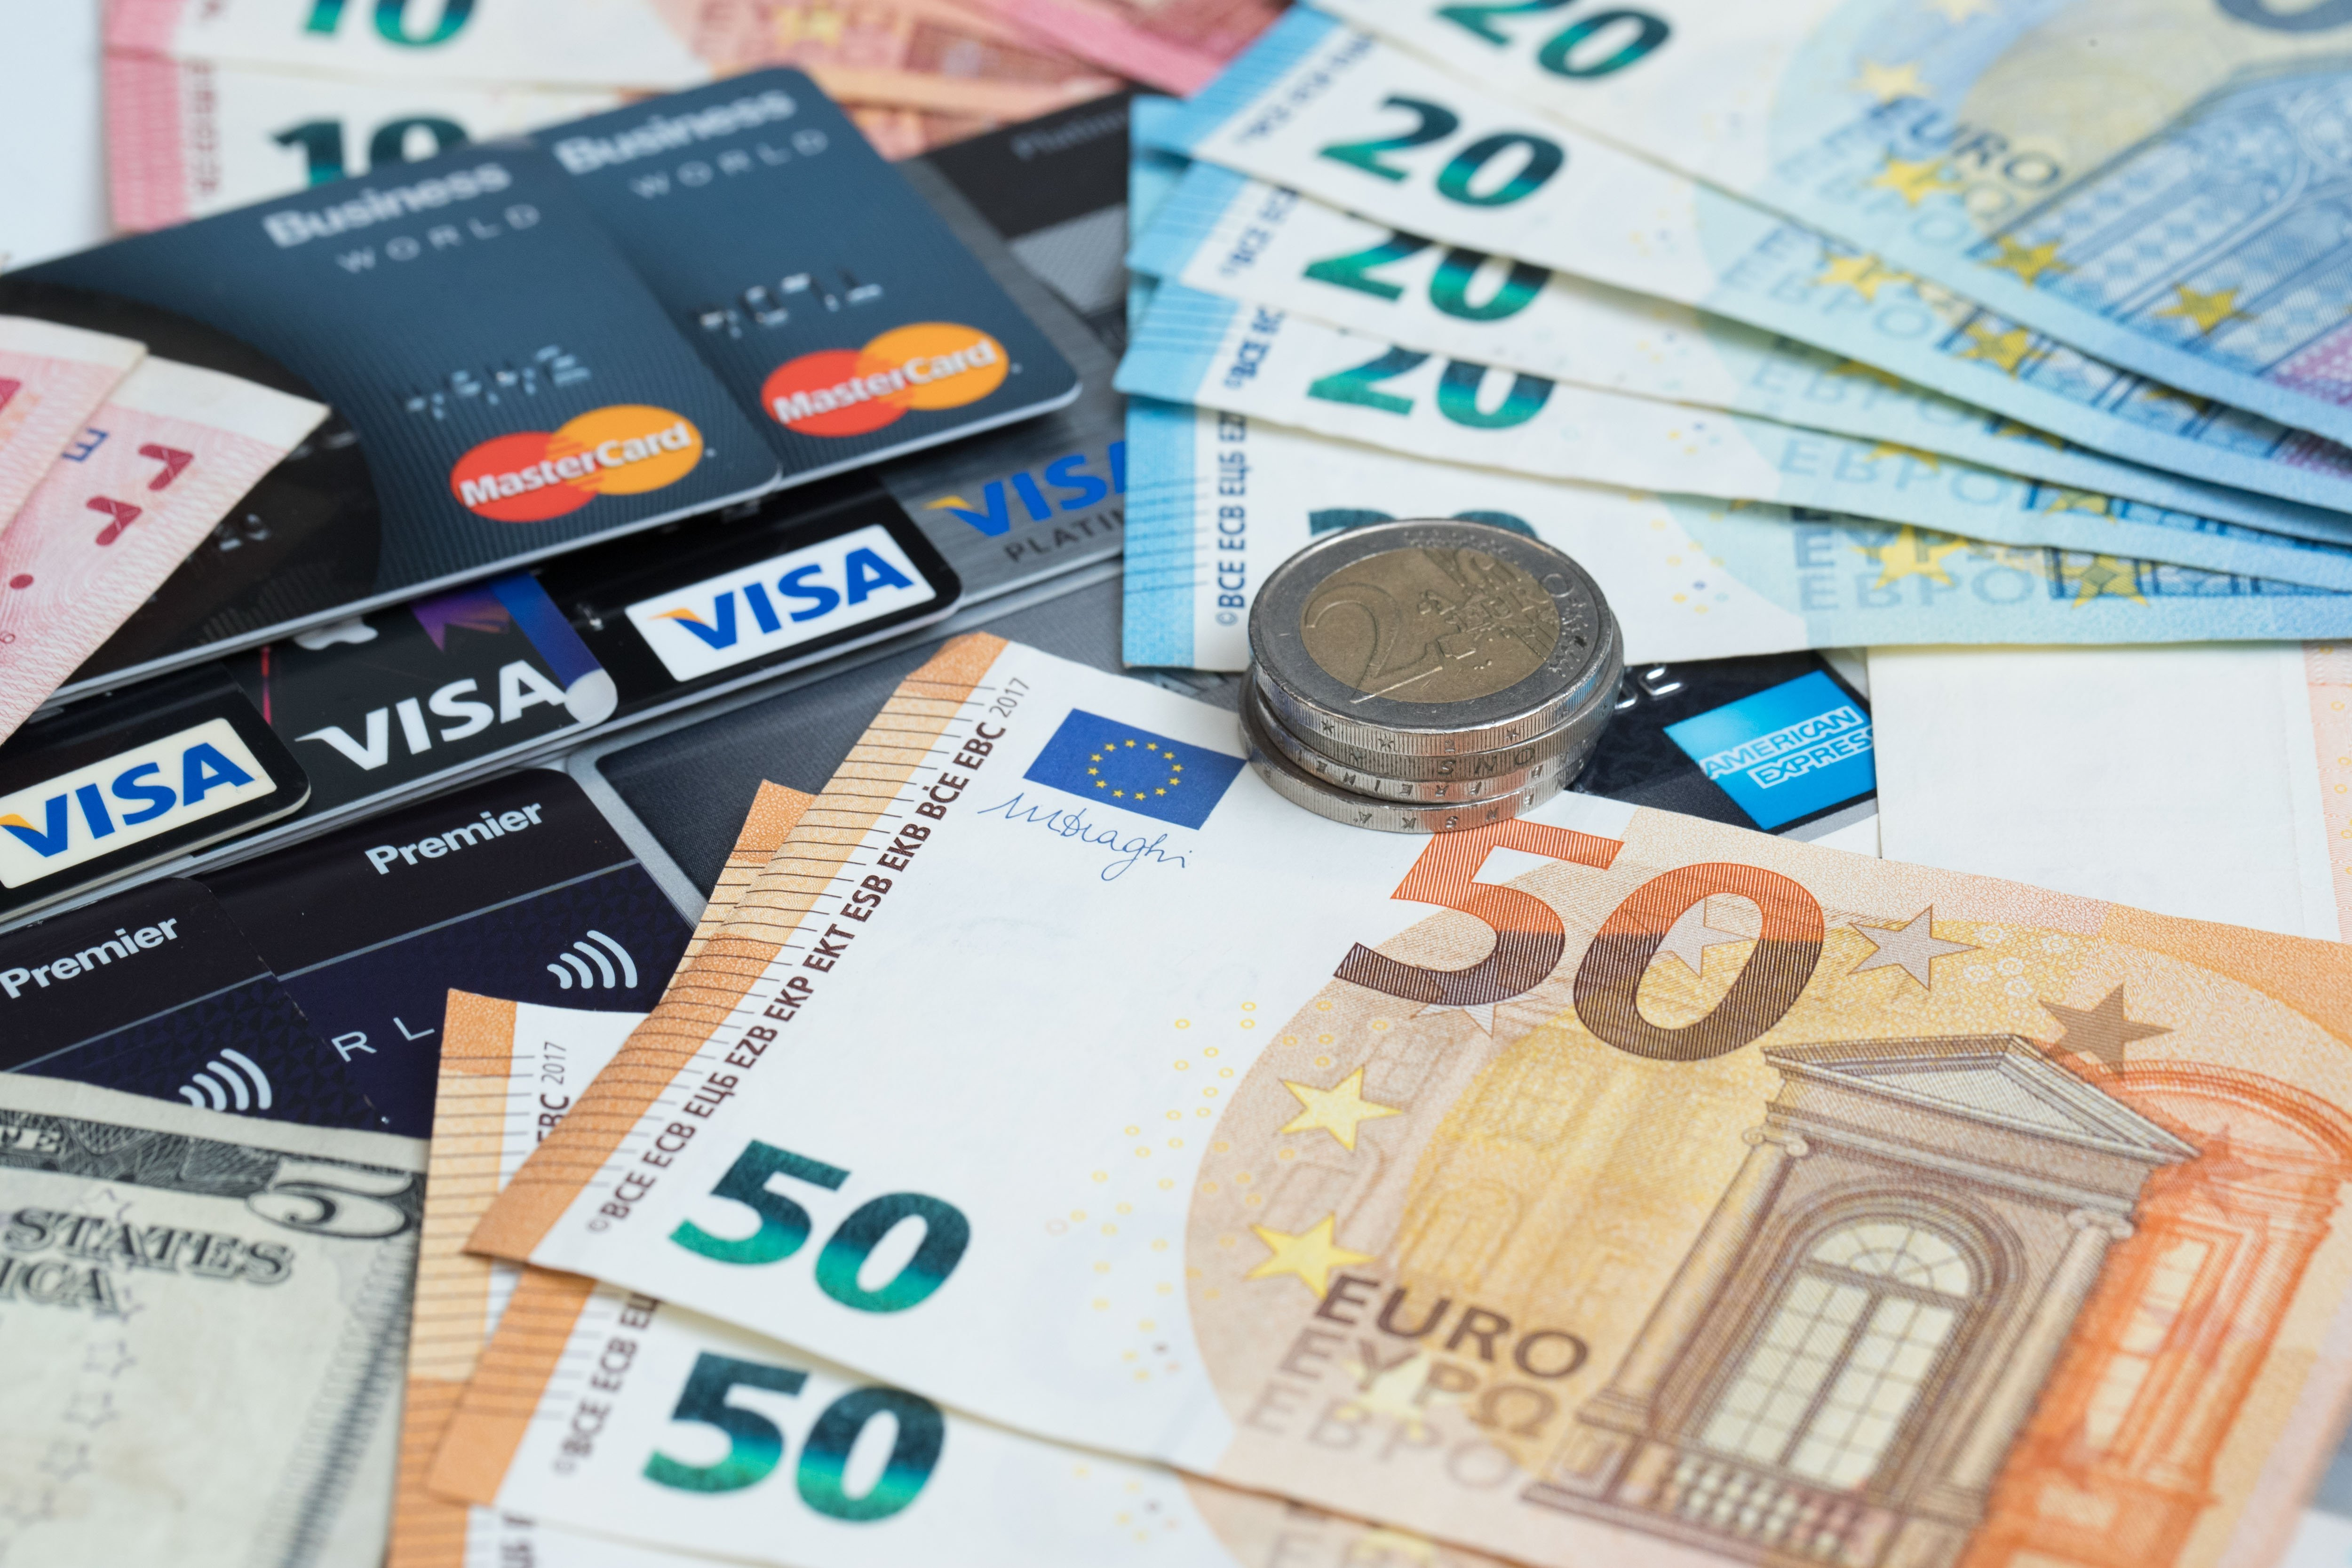 Euro coins and bills and several VISA credit cards | Photo: Getty Images